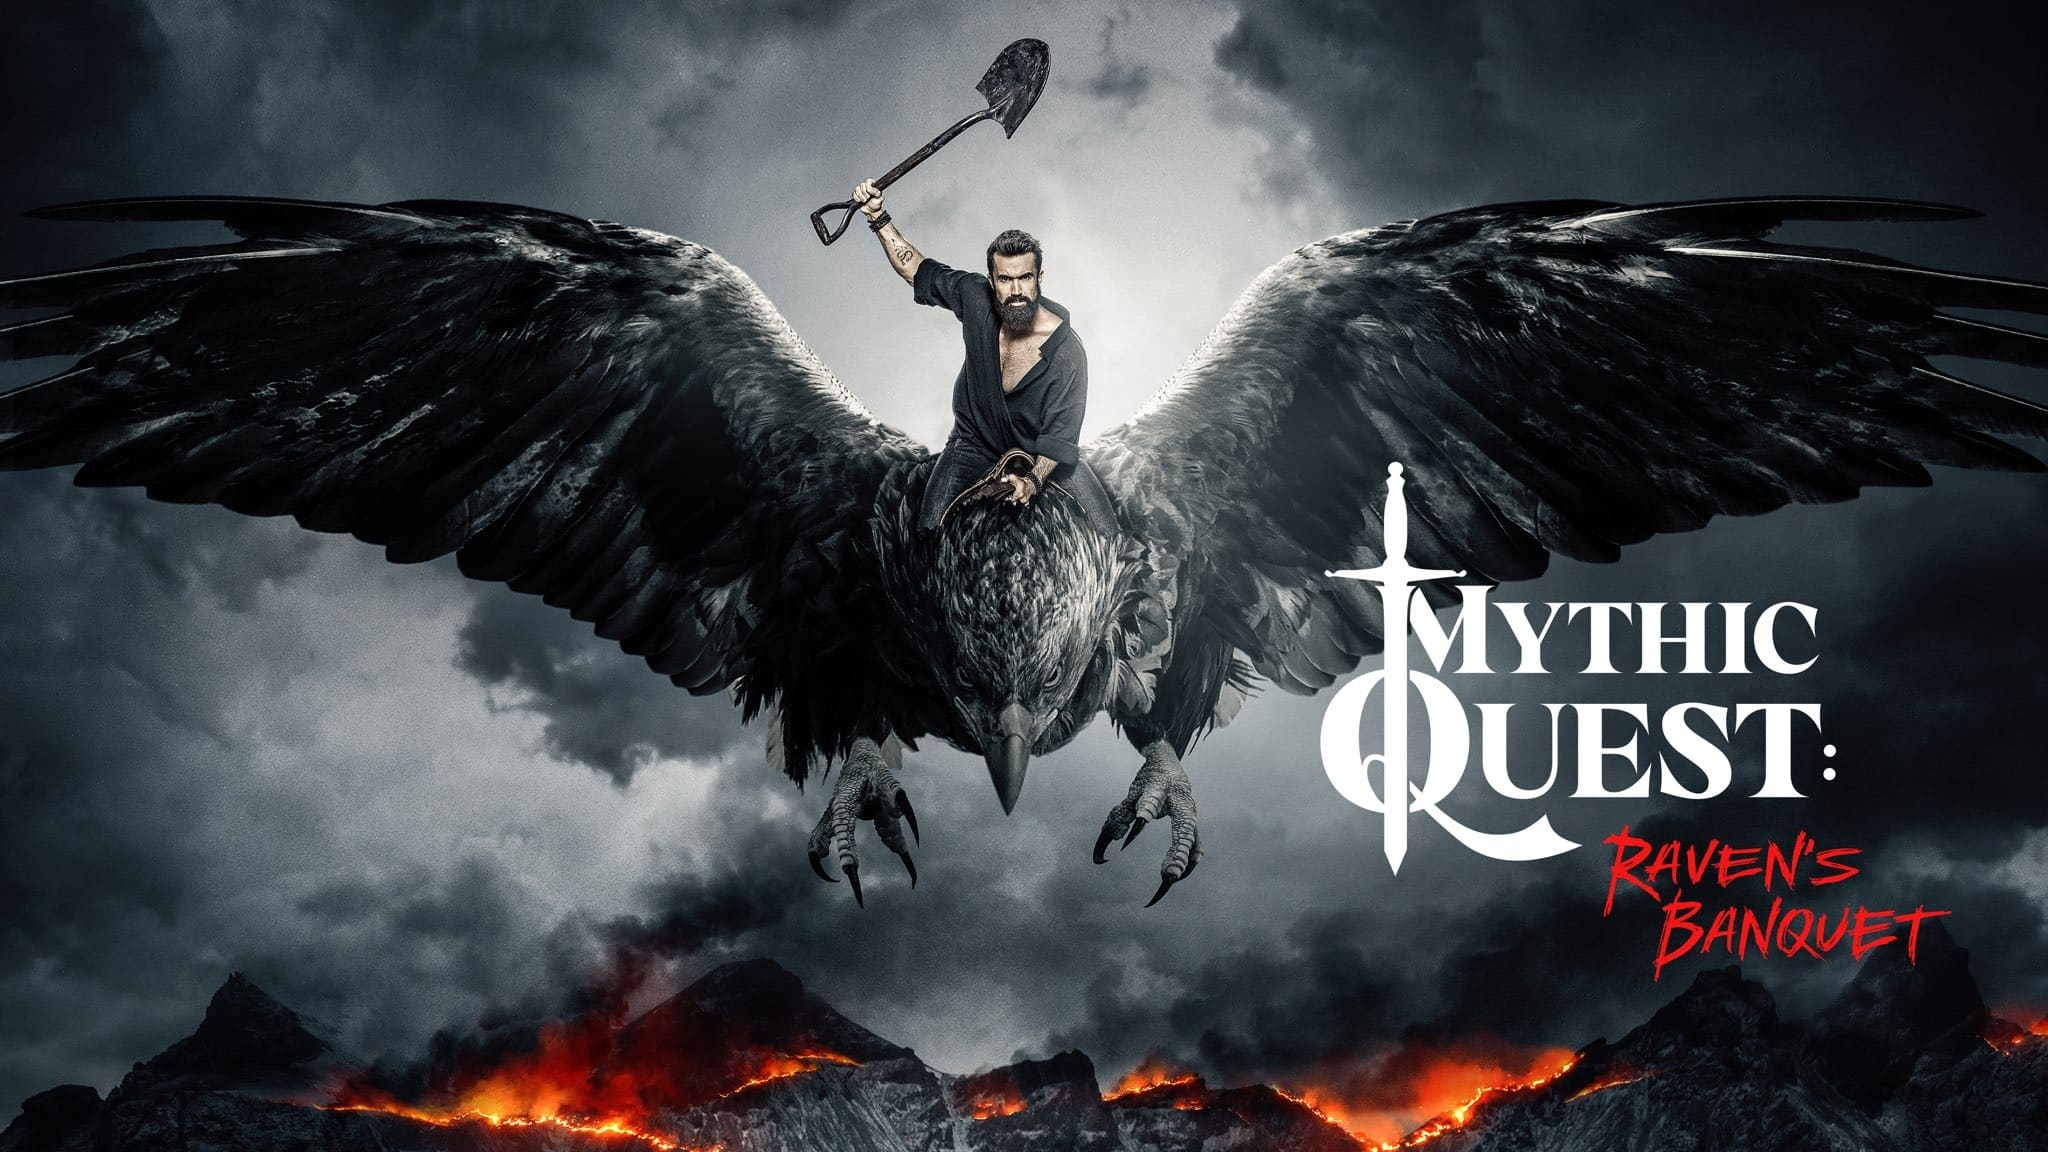 Mythic Quest: Raven's Banquet Now Available on Apple TV+